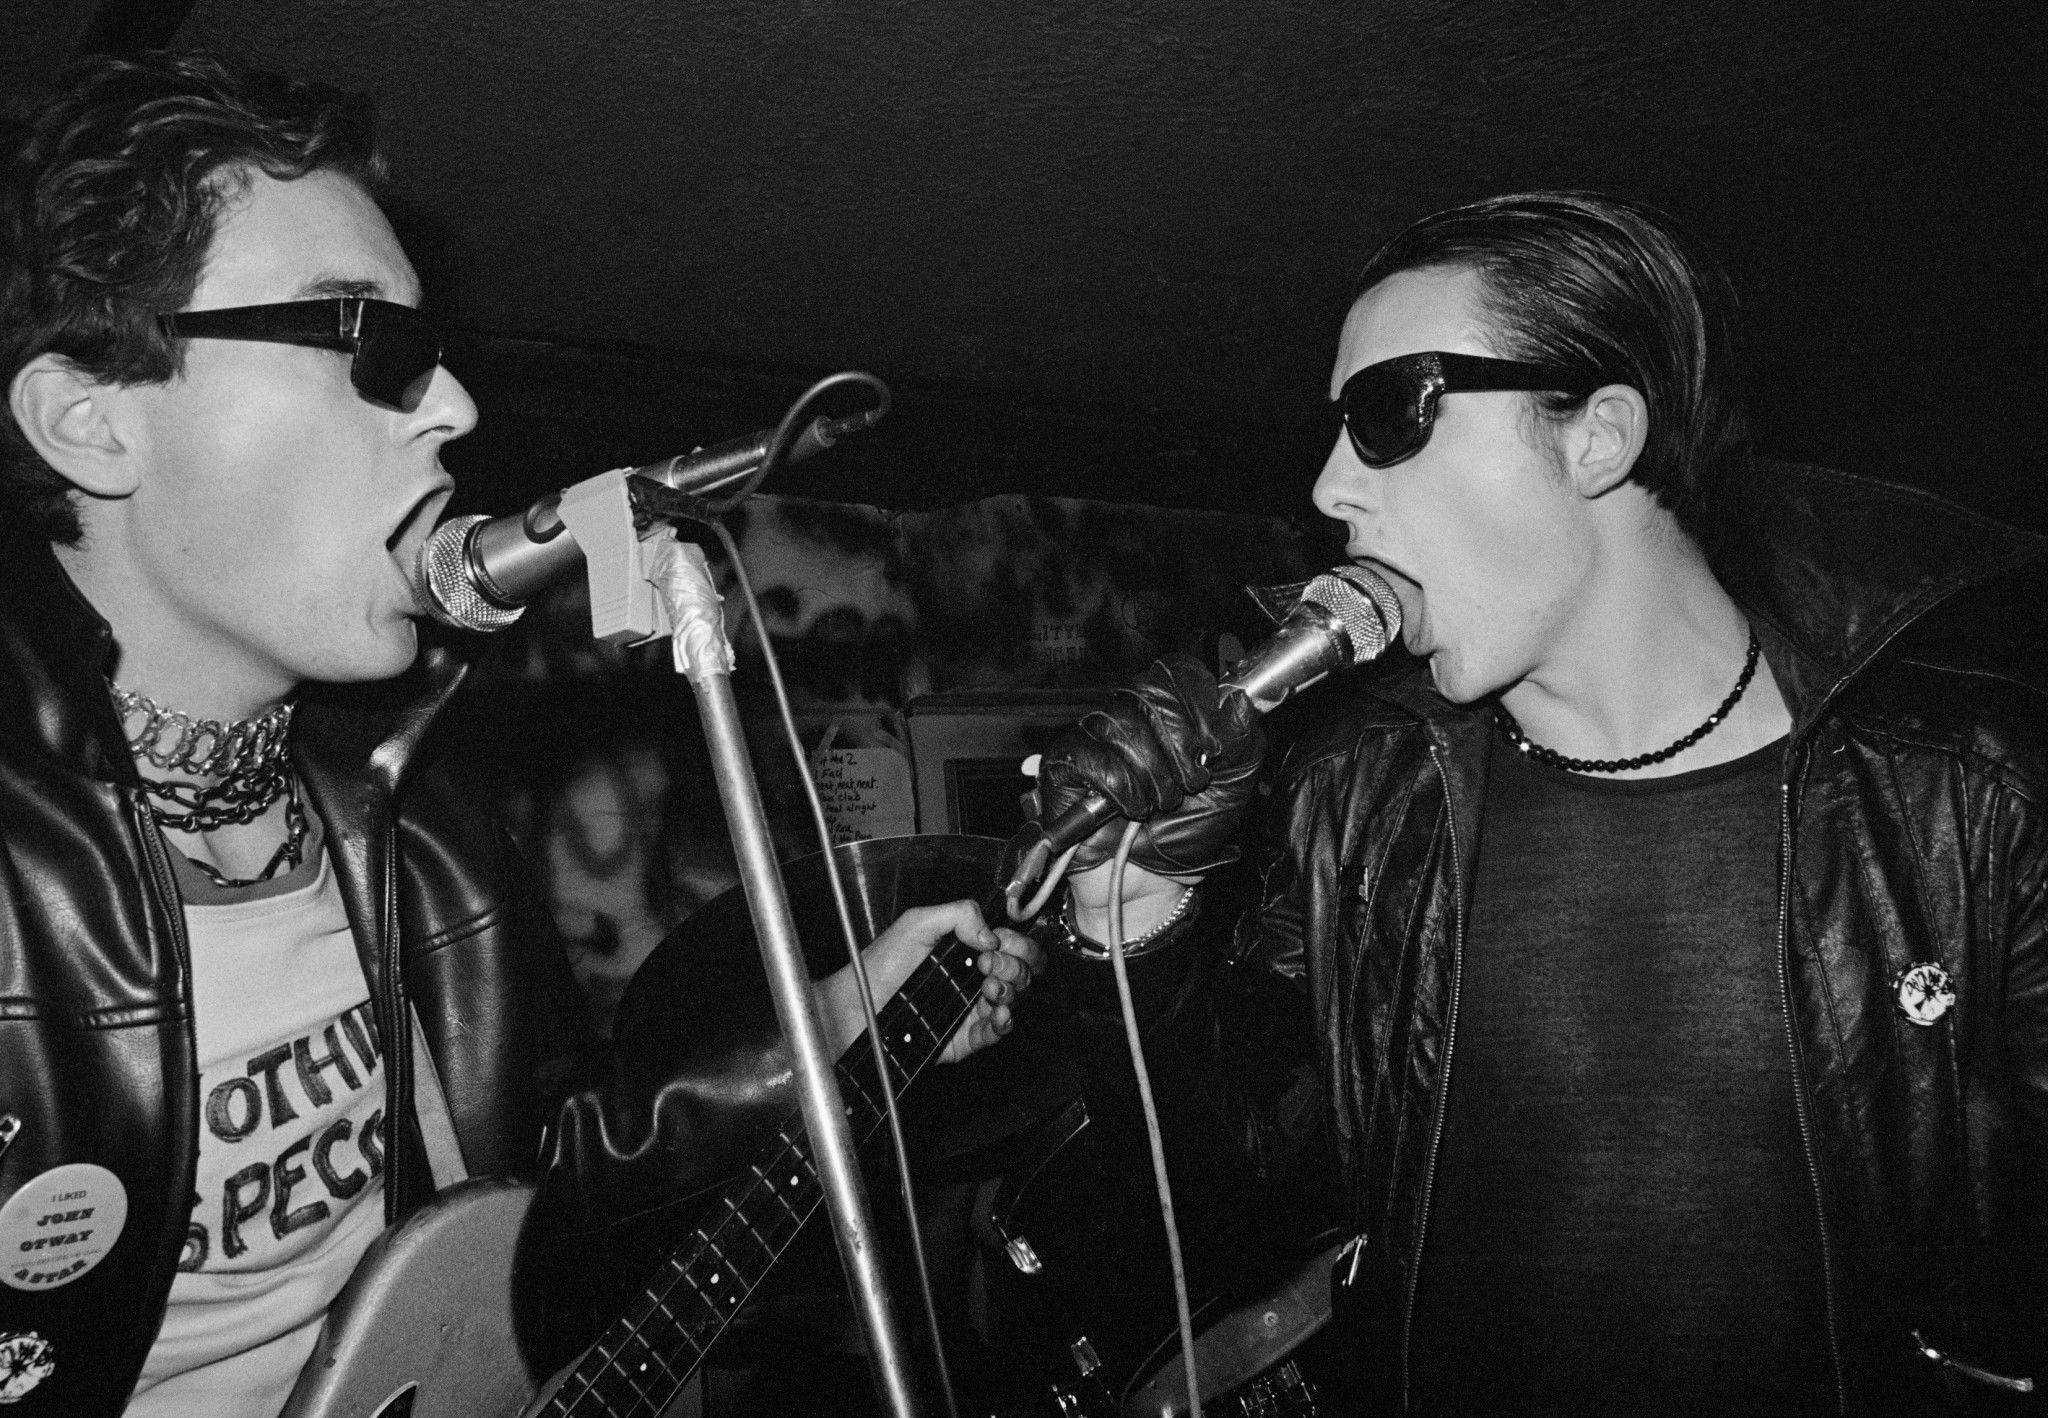 The Damned - Captain Sensible & David Vanian live at the Hope & Anchor, London 1 January 1977 (c) John Ingham 1977